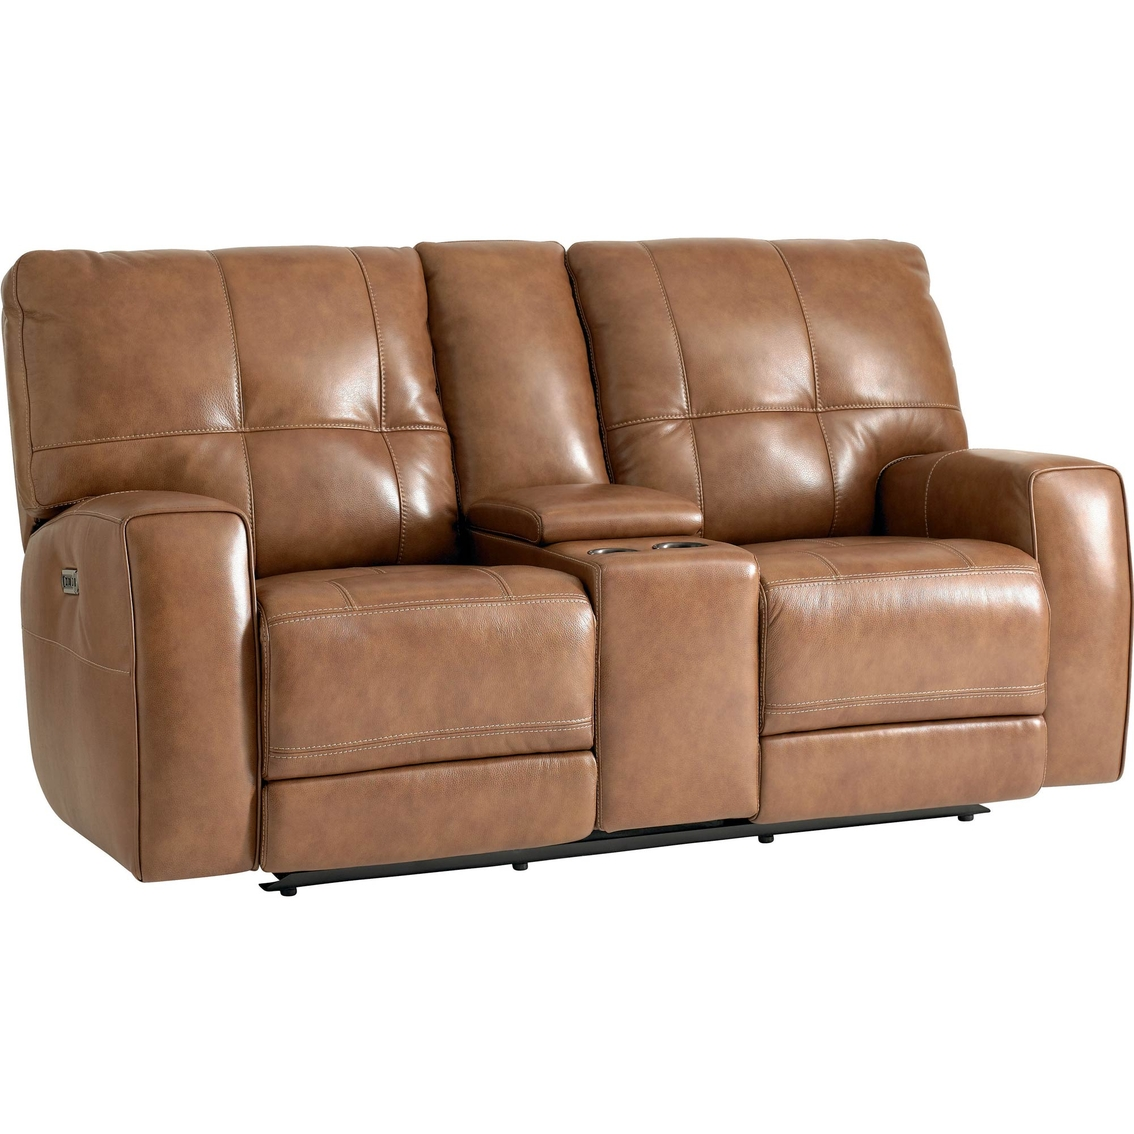 Bassett Club Level Conway Power Reclining Loveseat Sofas